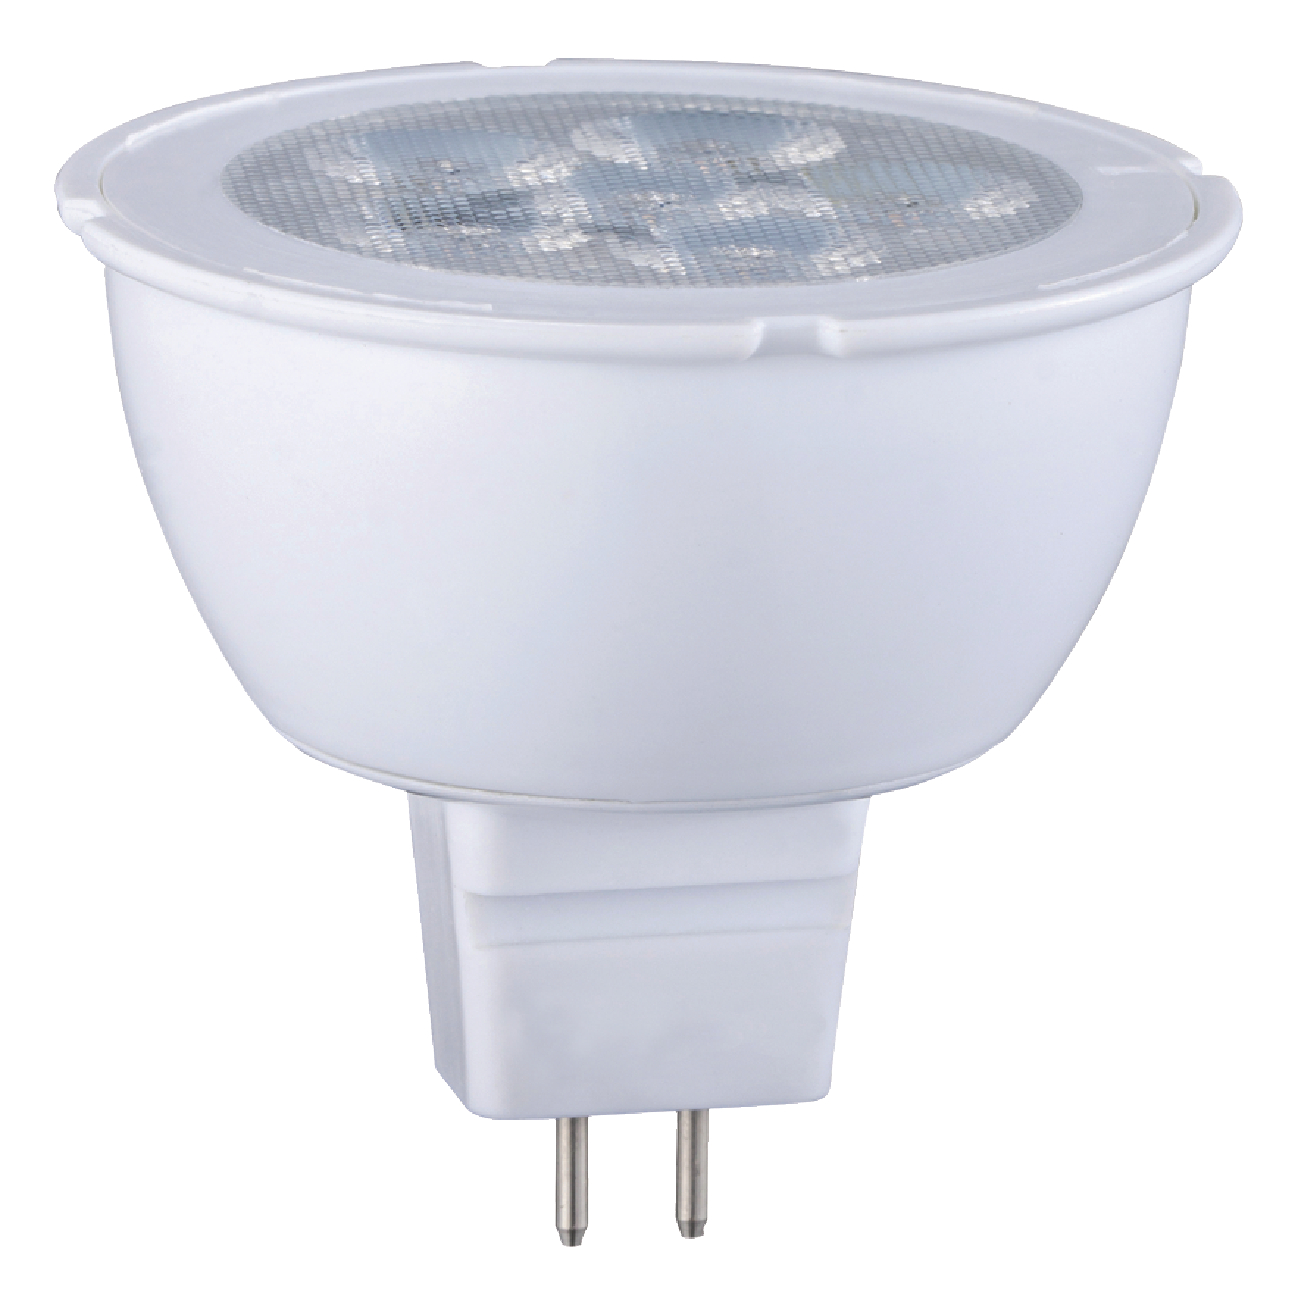 HQ LED žárovka MR16 GU5.3 3.1W 230lm 2700K (HQLGU53MR16001)